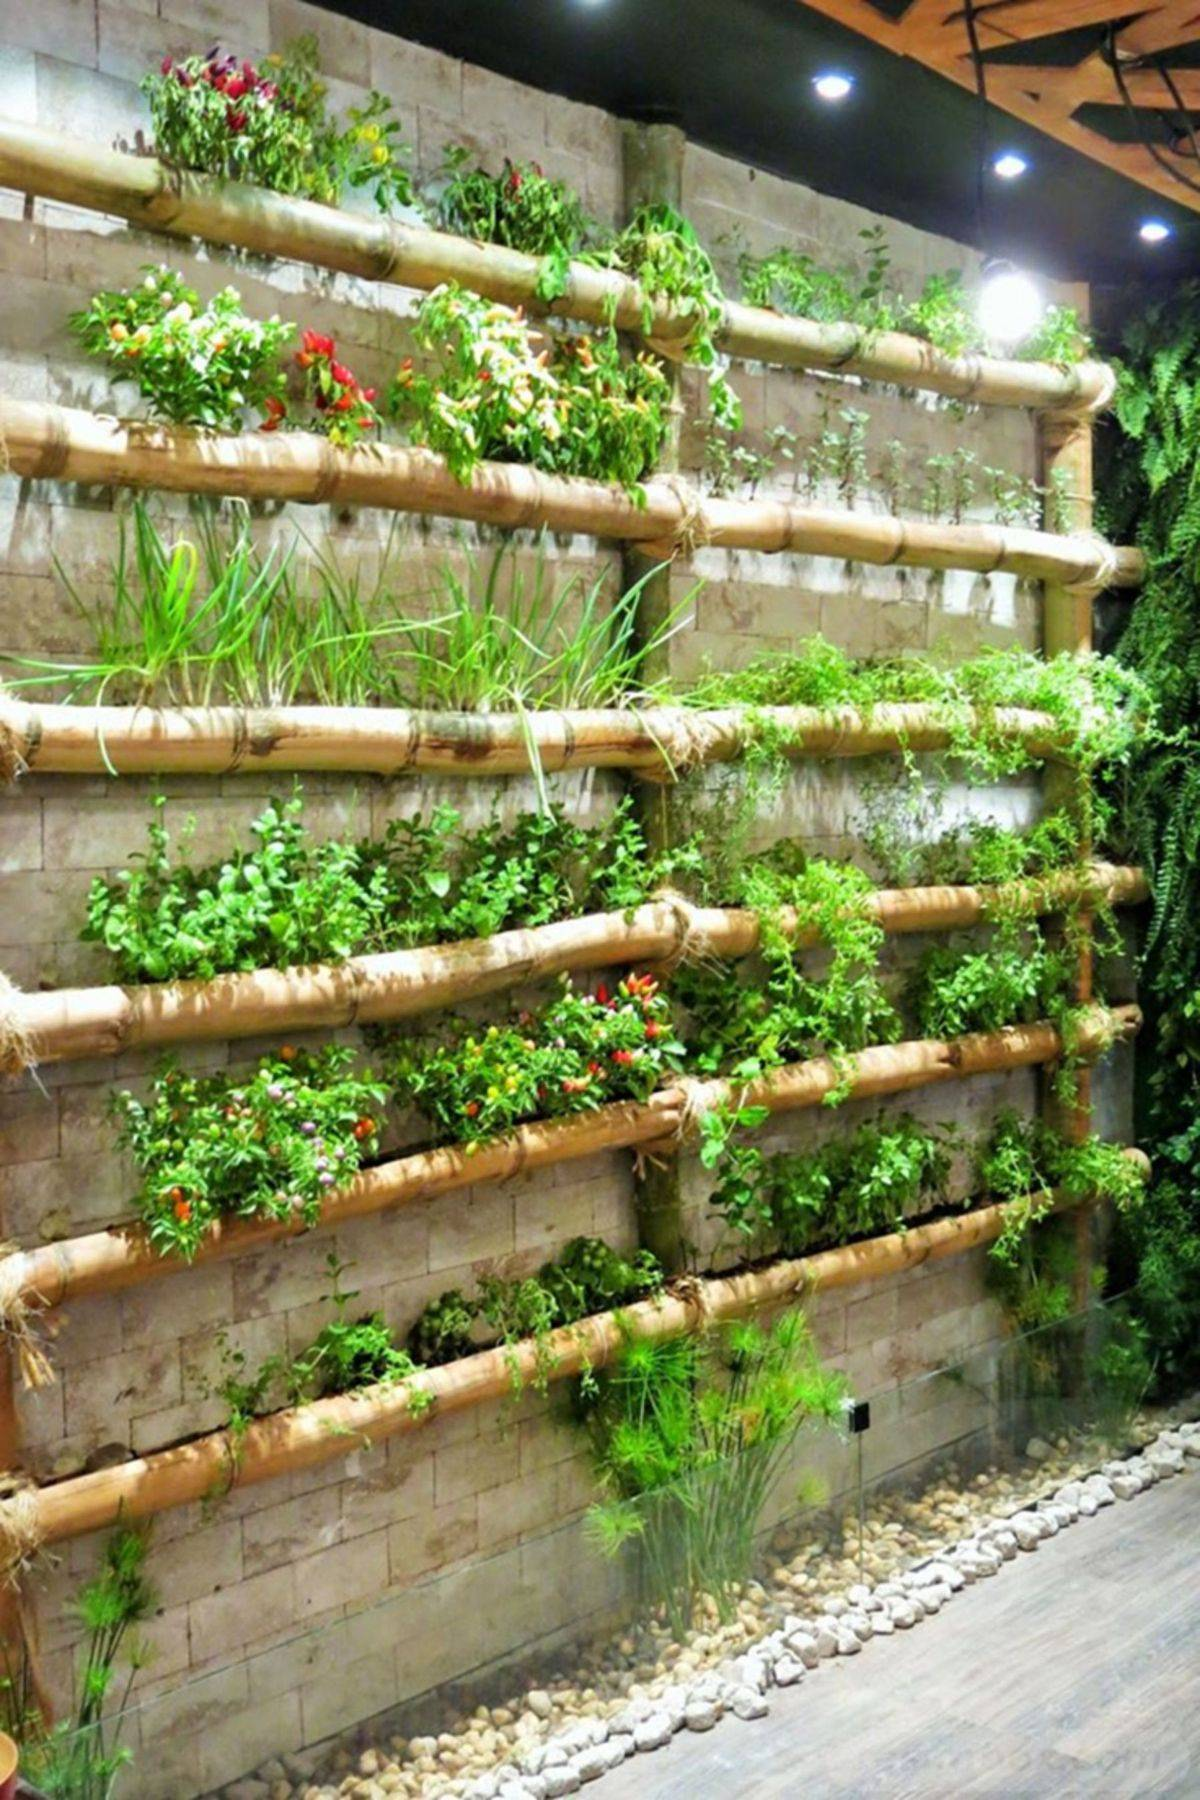 diy easy garden ideas-597219600565805138